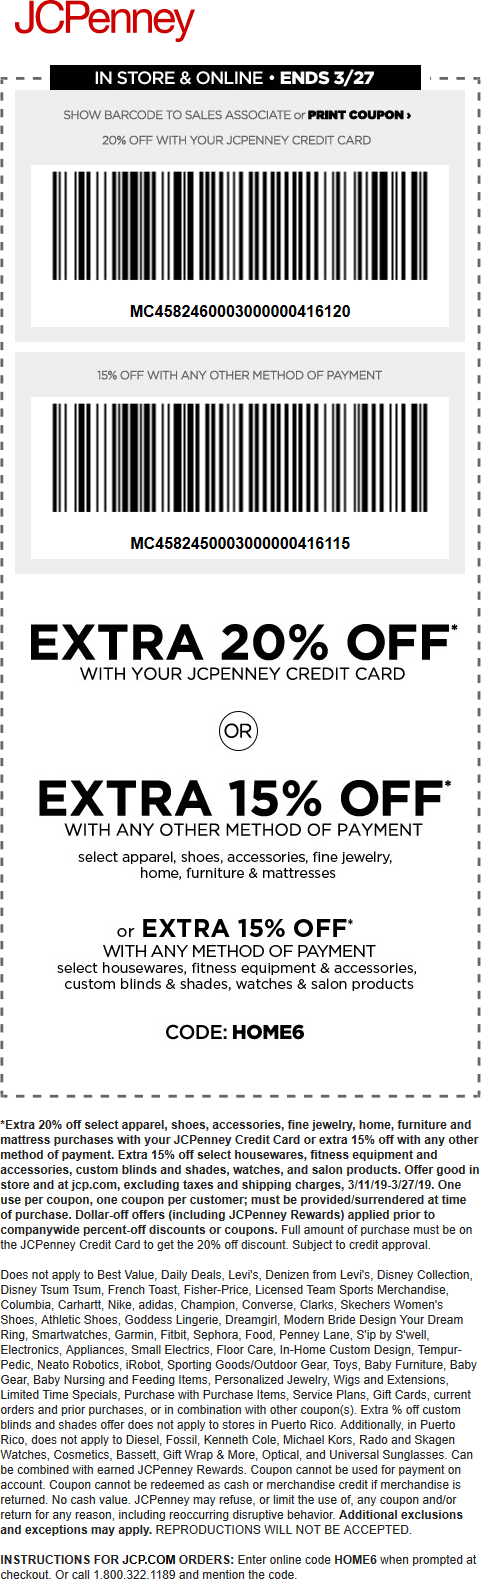 JCPenney Coupon May 2019 15% off at JCPenney, or online via promo code HOME6